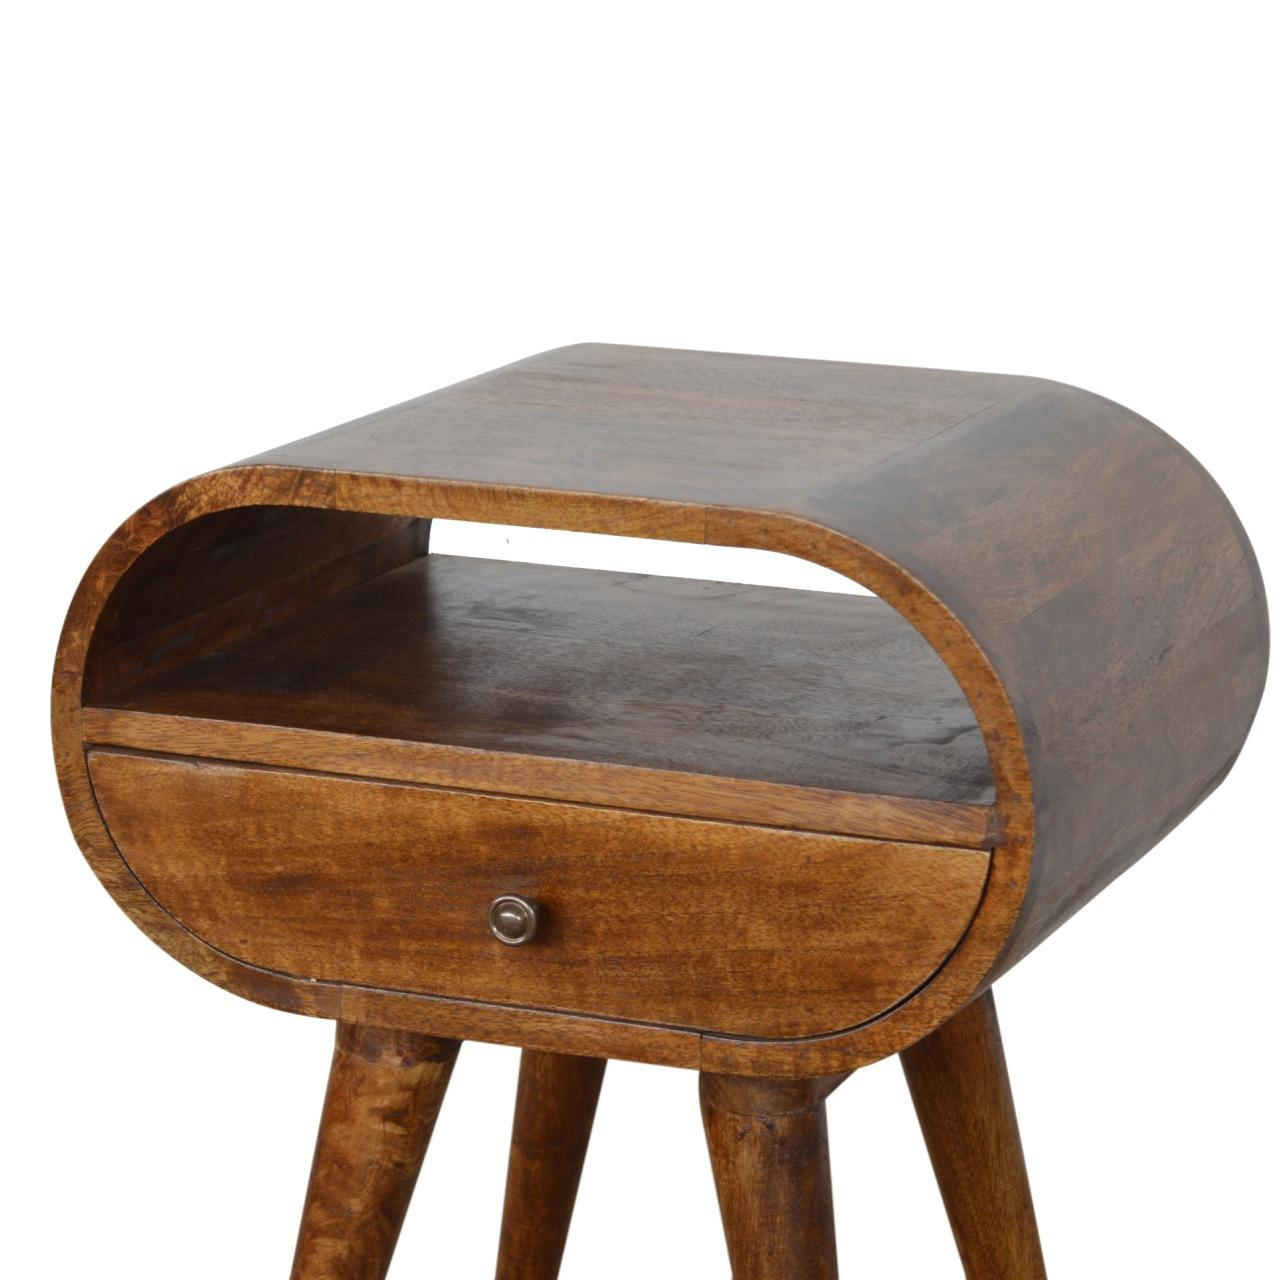 Chestnut Circular Bedside with Open Slot